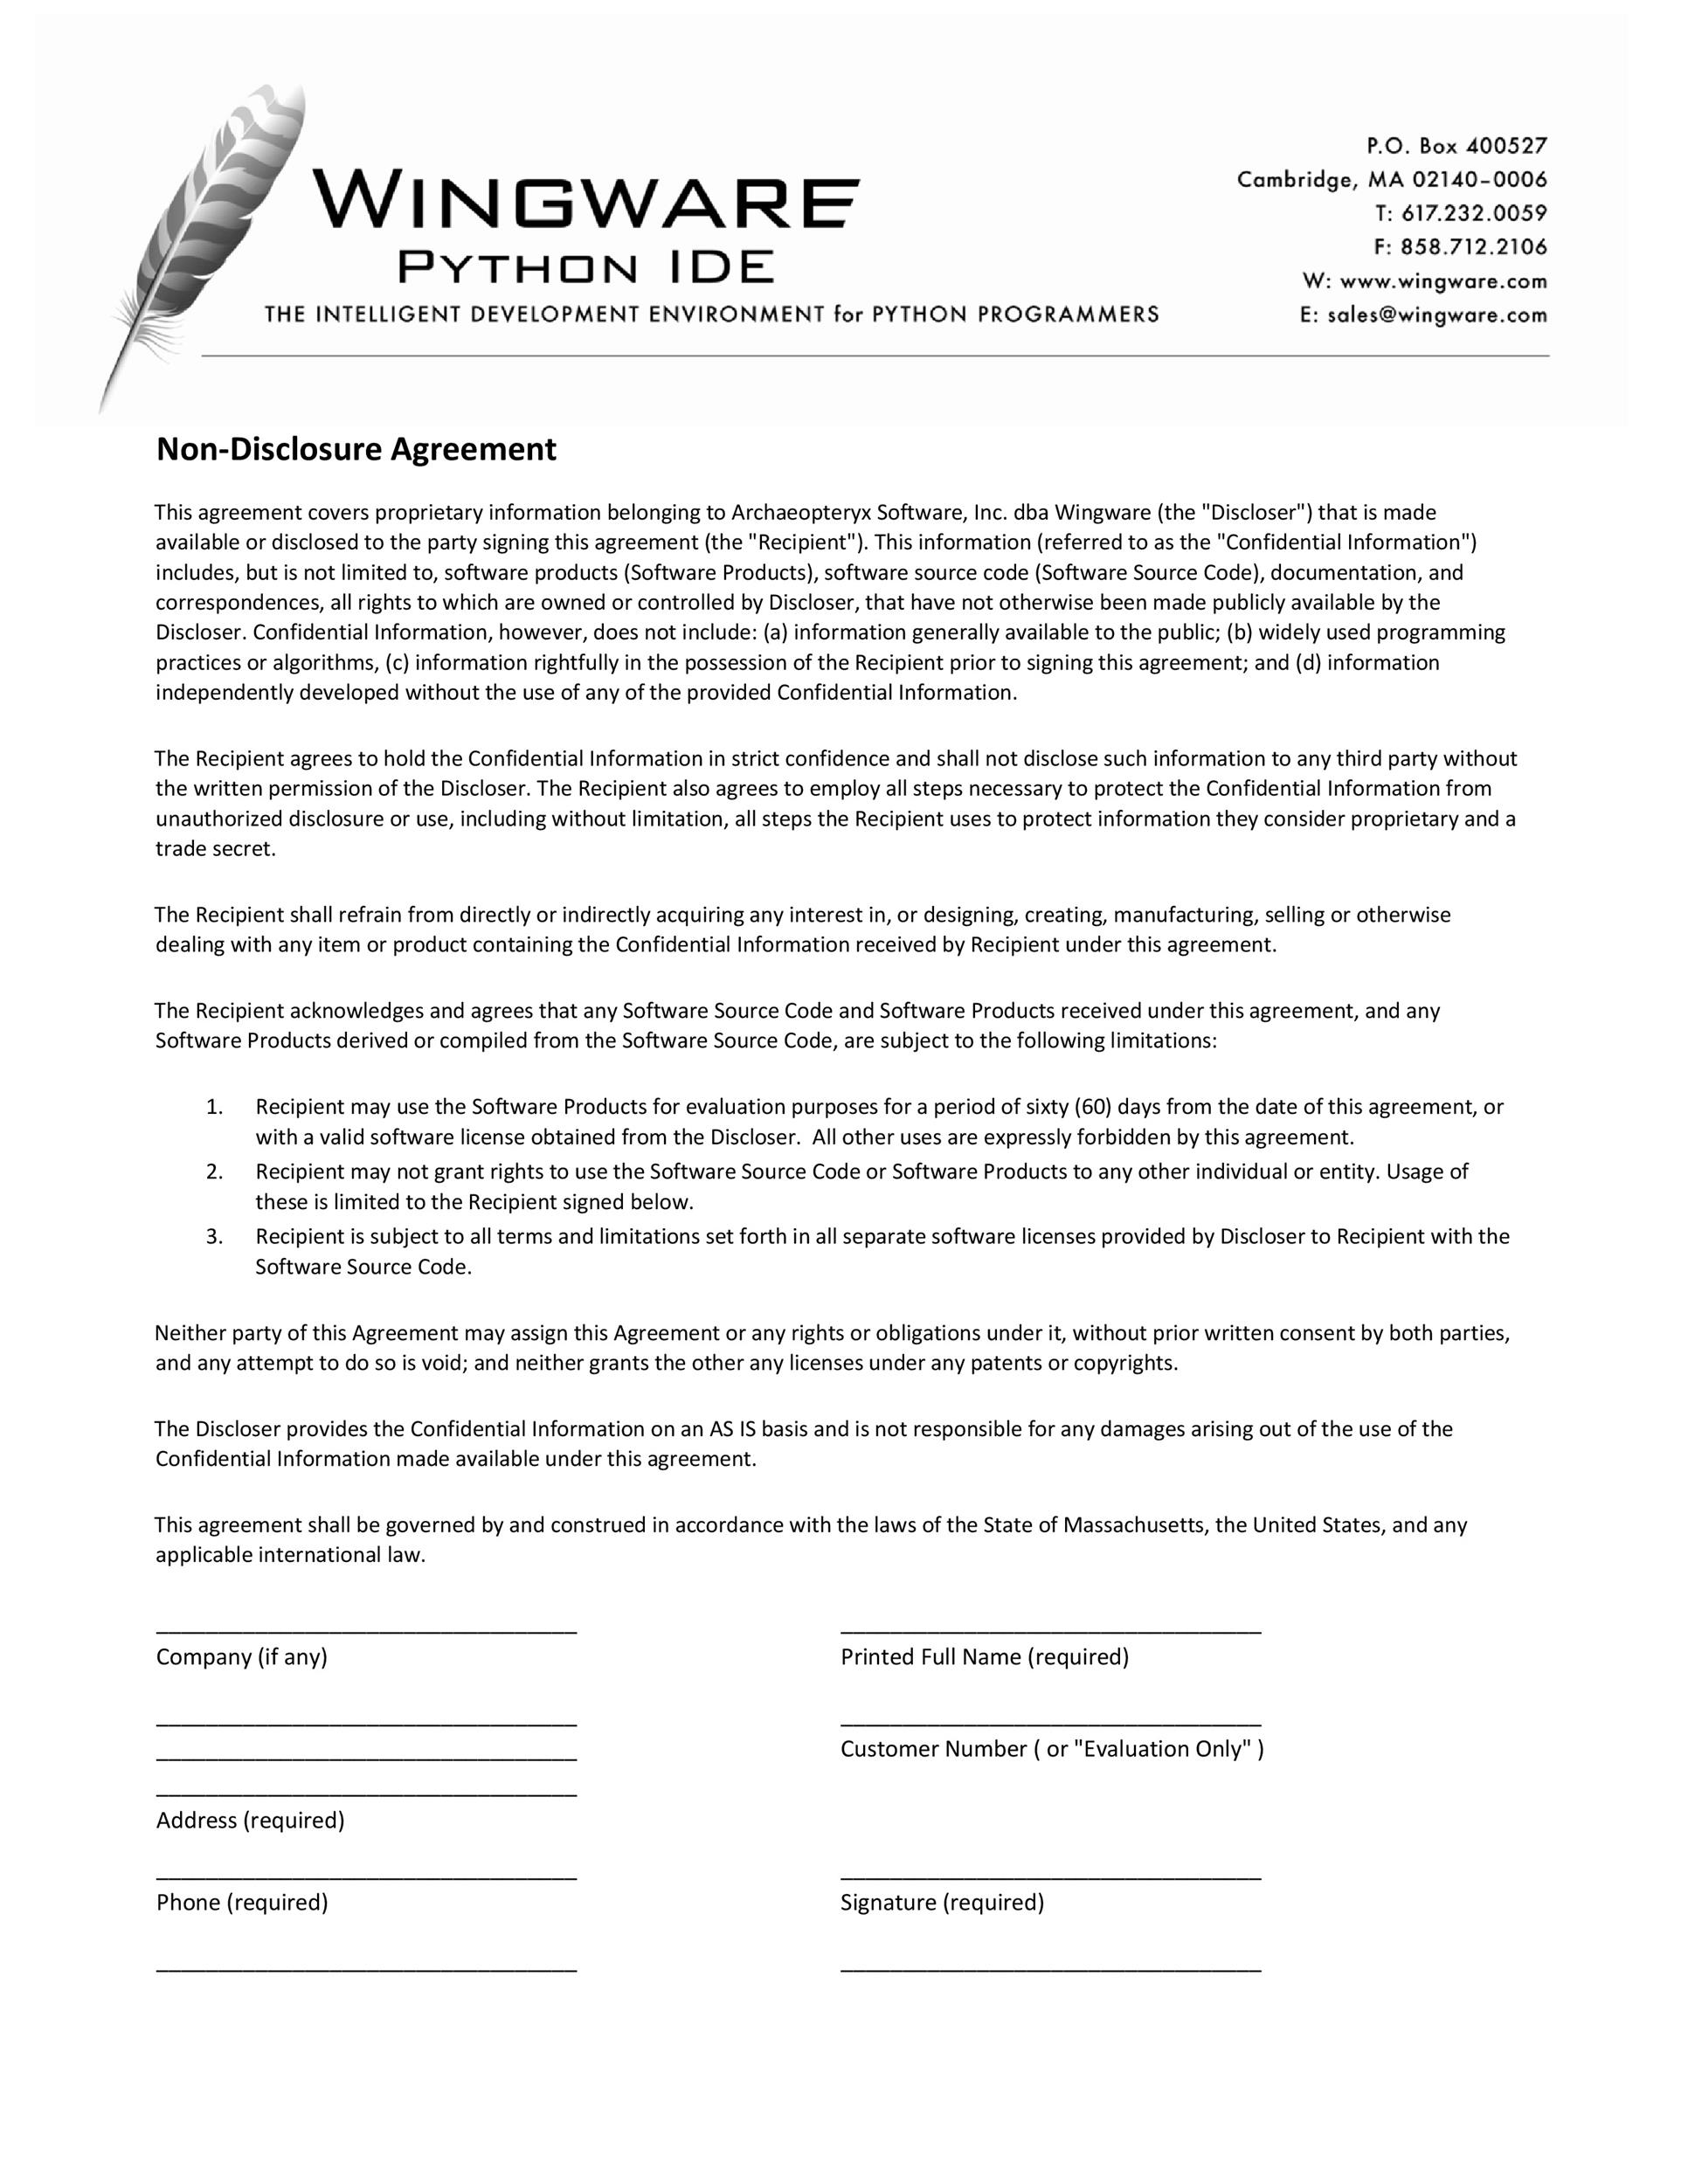 Non Disclosure Agreement Template 30